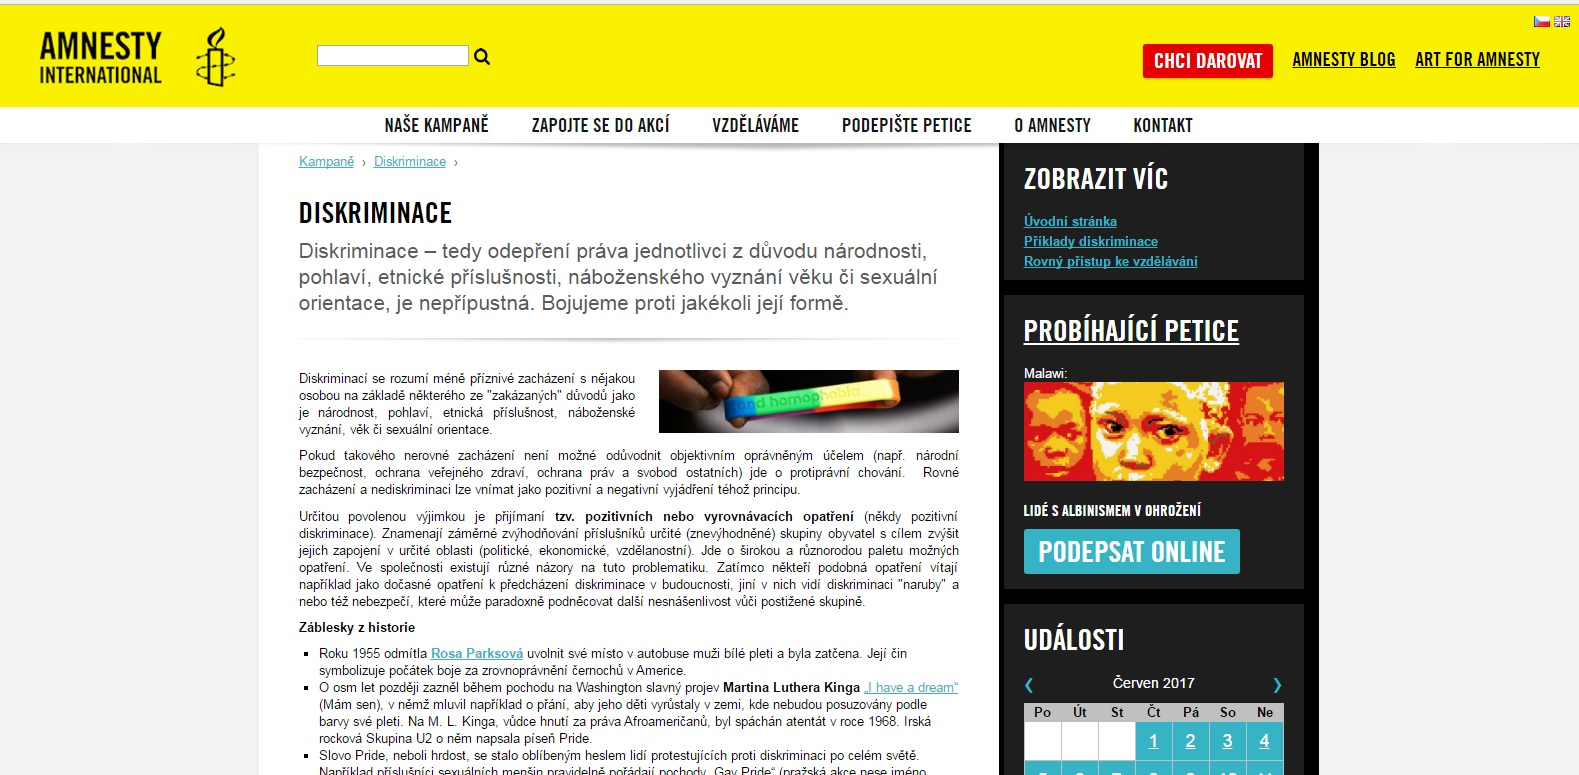 WEB AMNESTY INTERNATIONAL O DISKRIMINACI